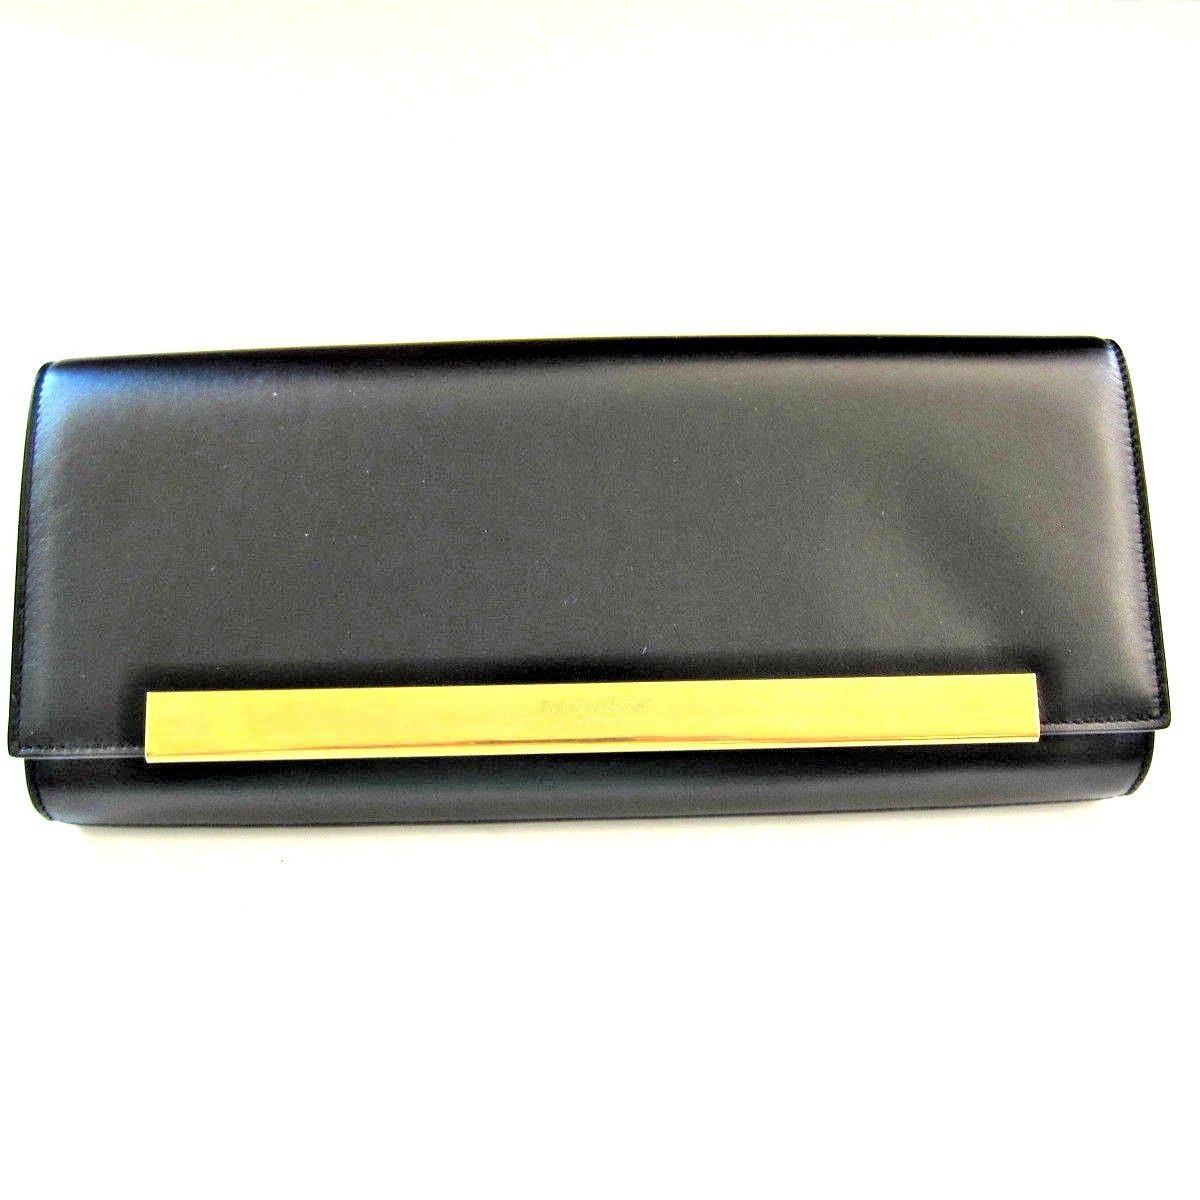 7dd6b1083c79 L-3139449 New Saint Laurent Black With Gold Accent Snap Wallet Clutch Purse  -  569.99